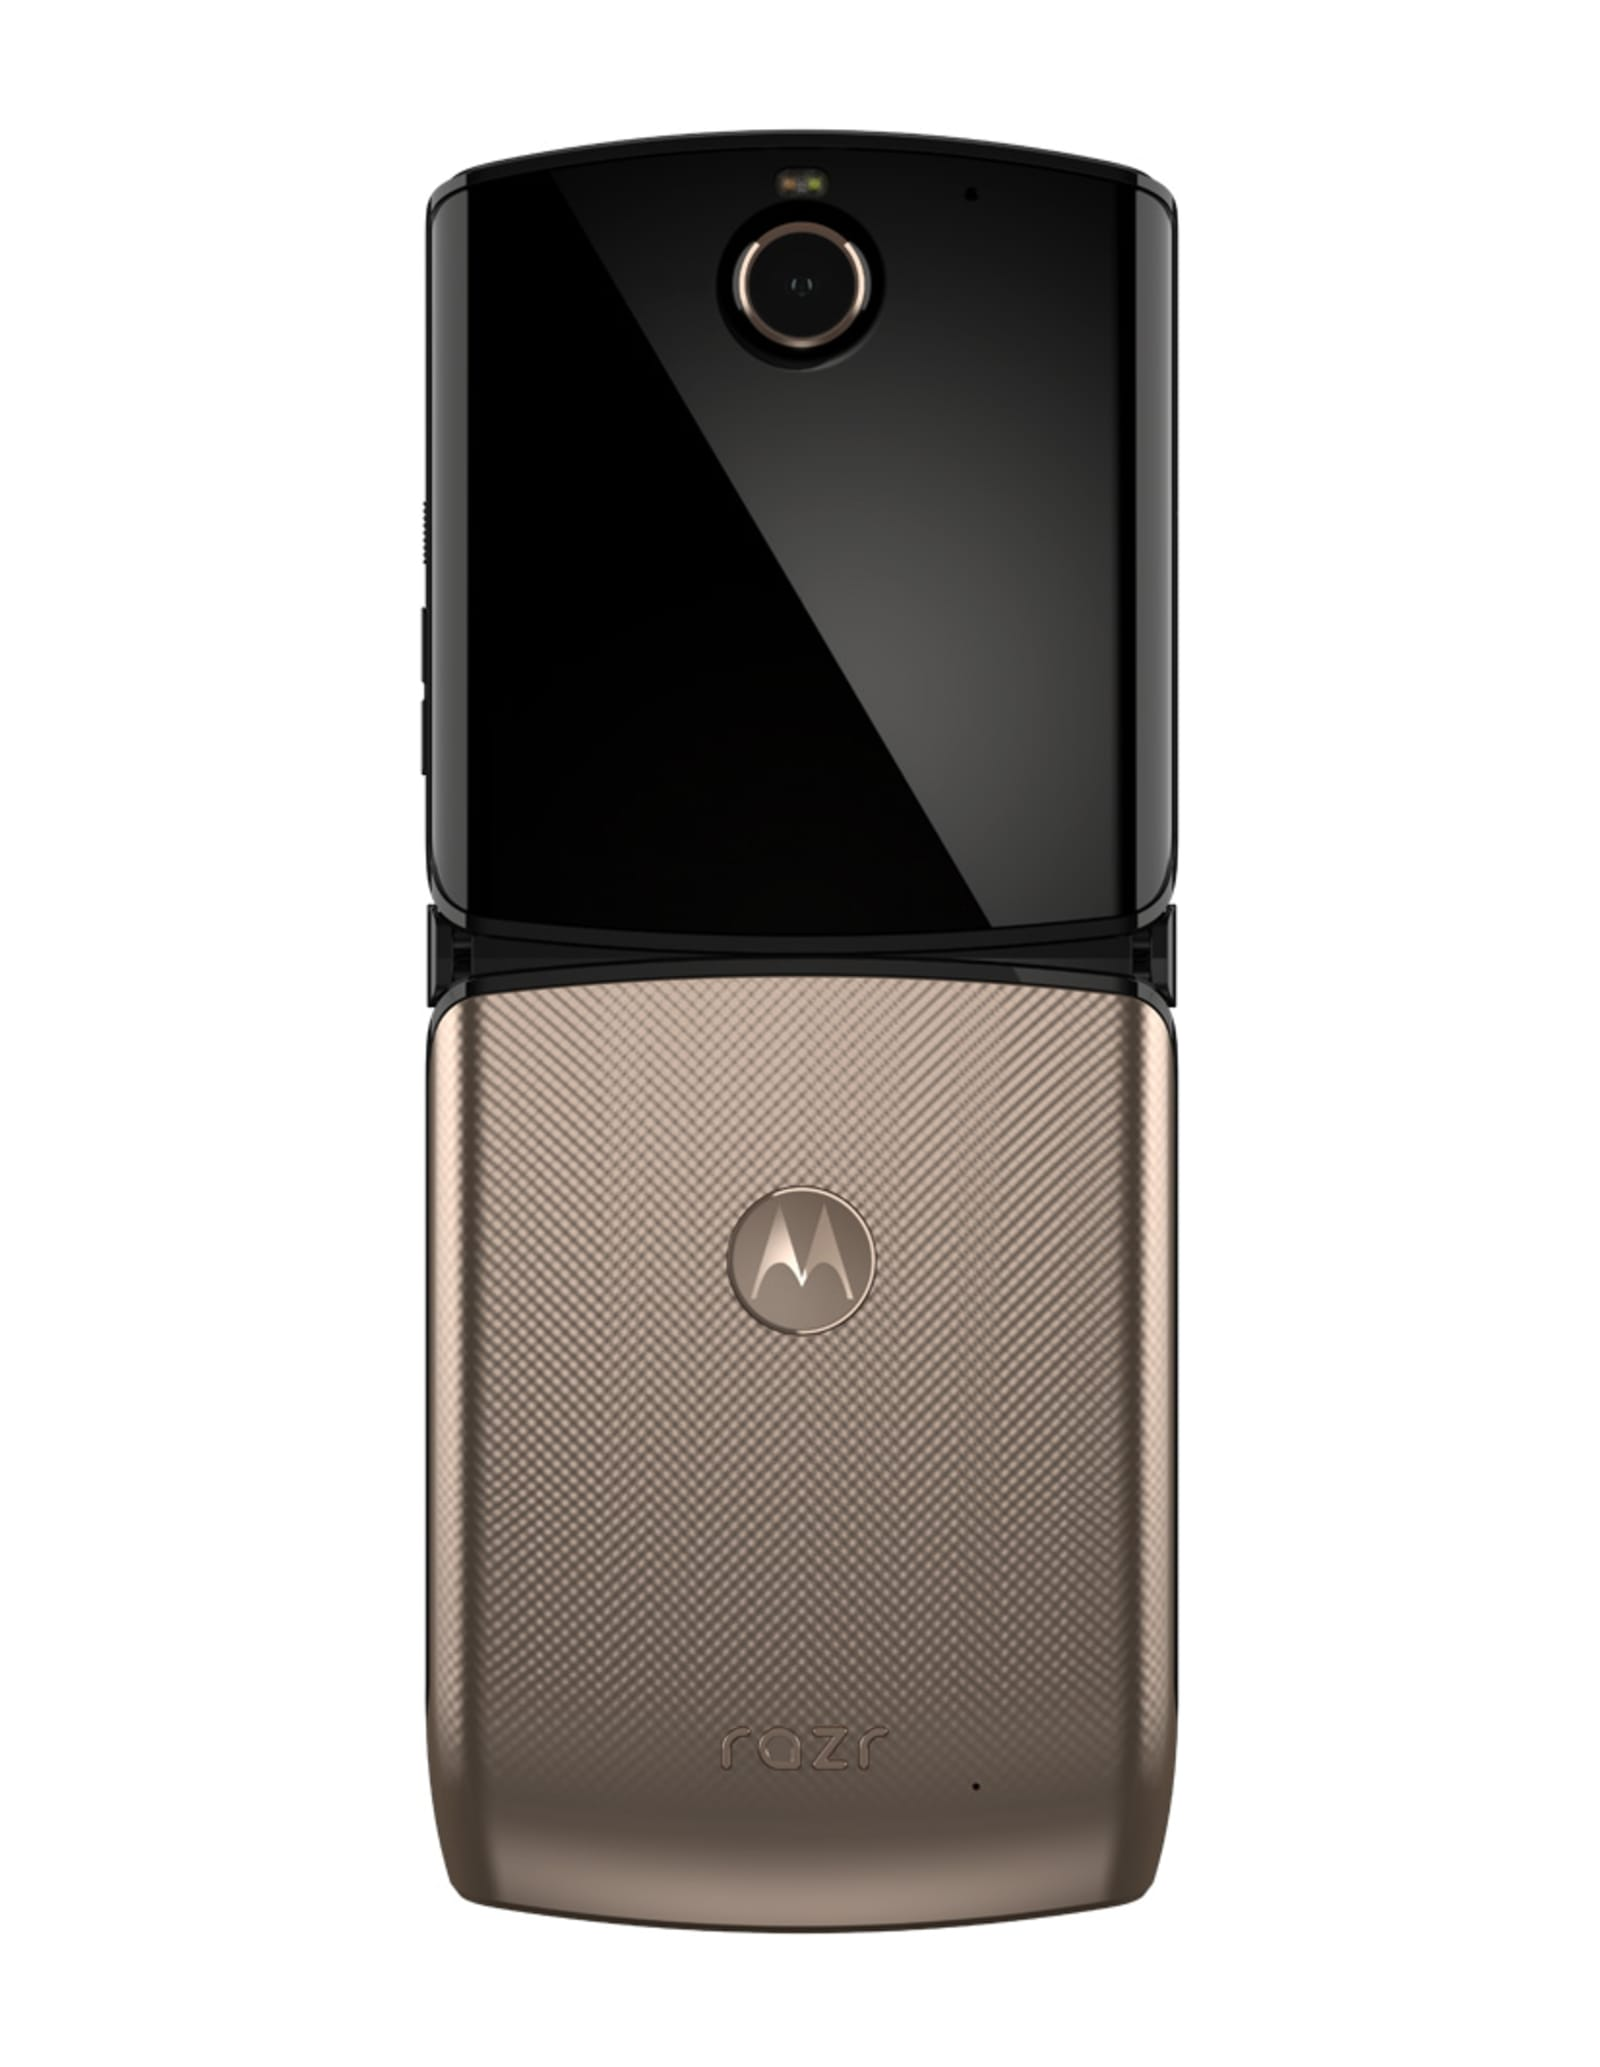 Motorola Razr (2020) in Blush Gold